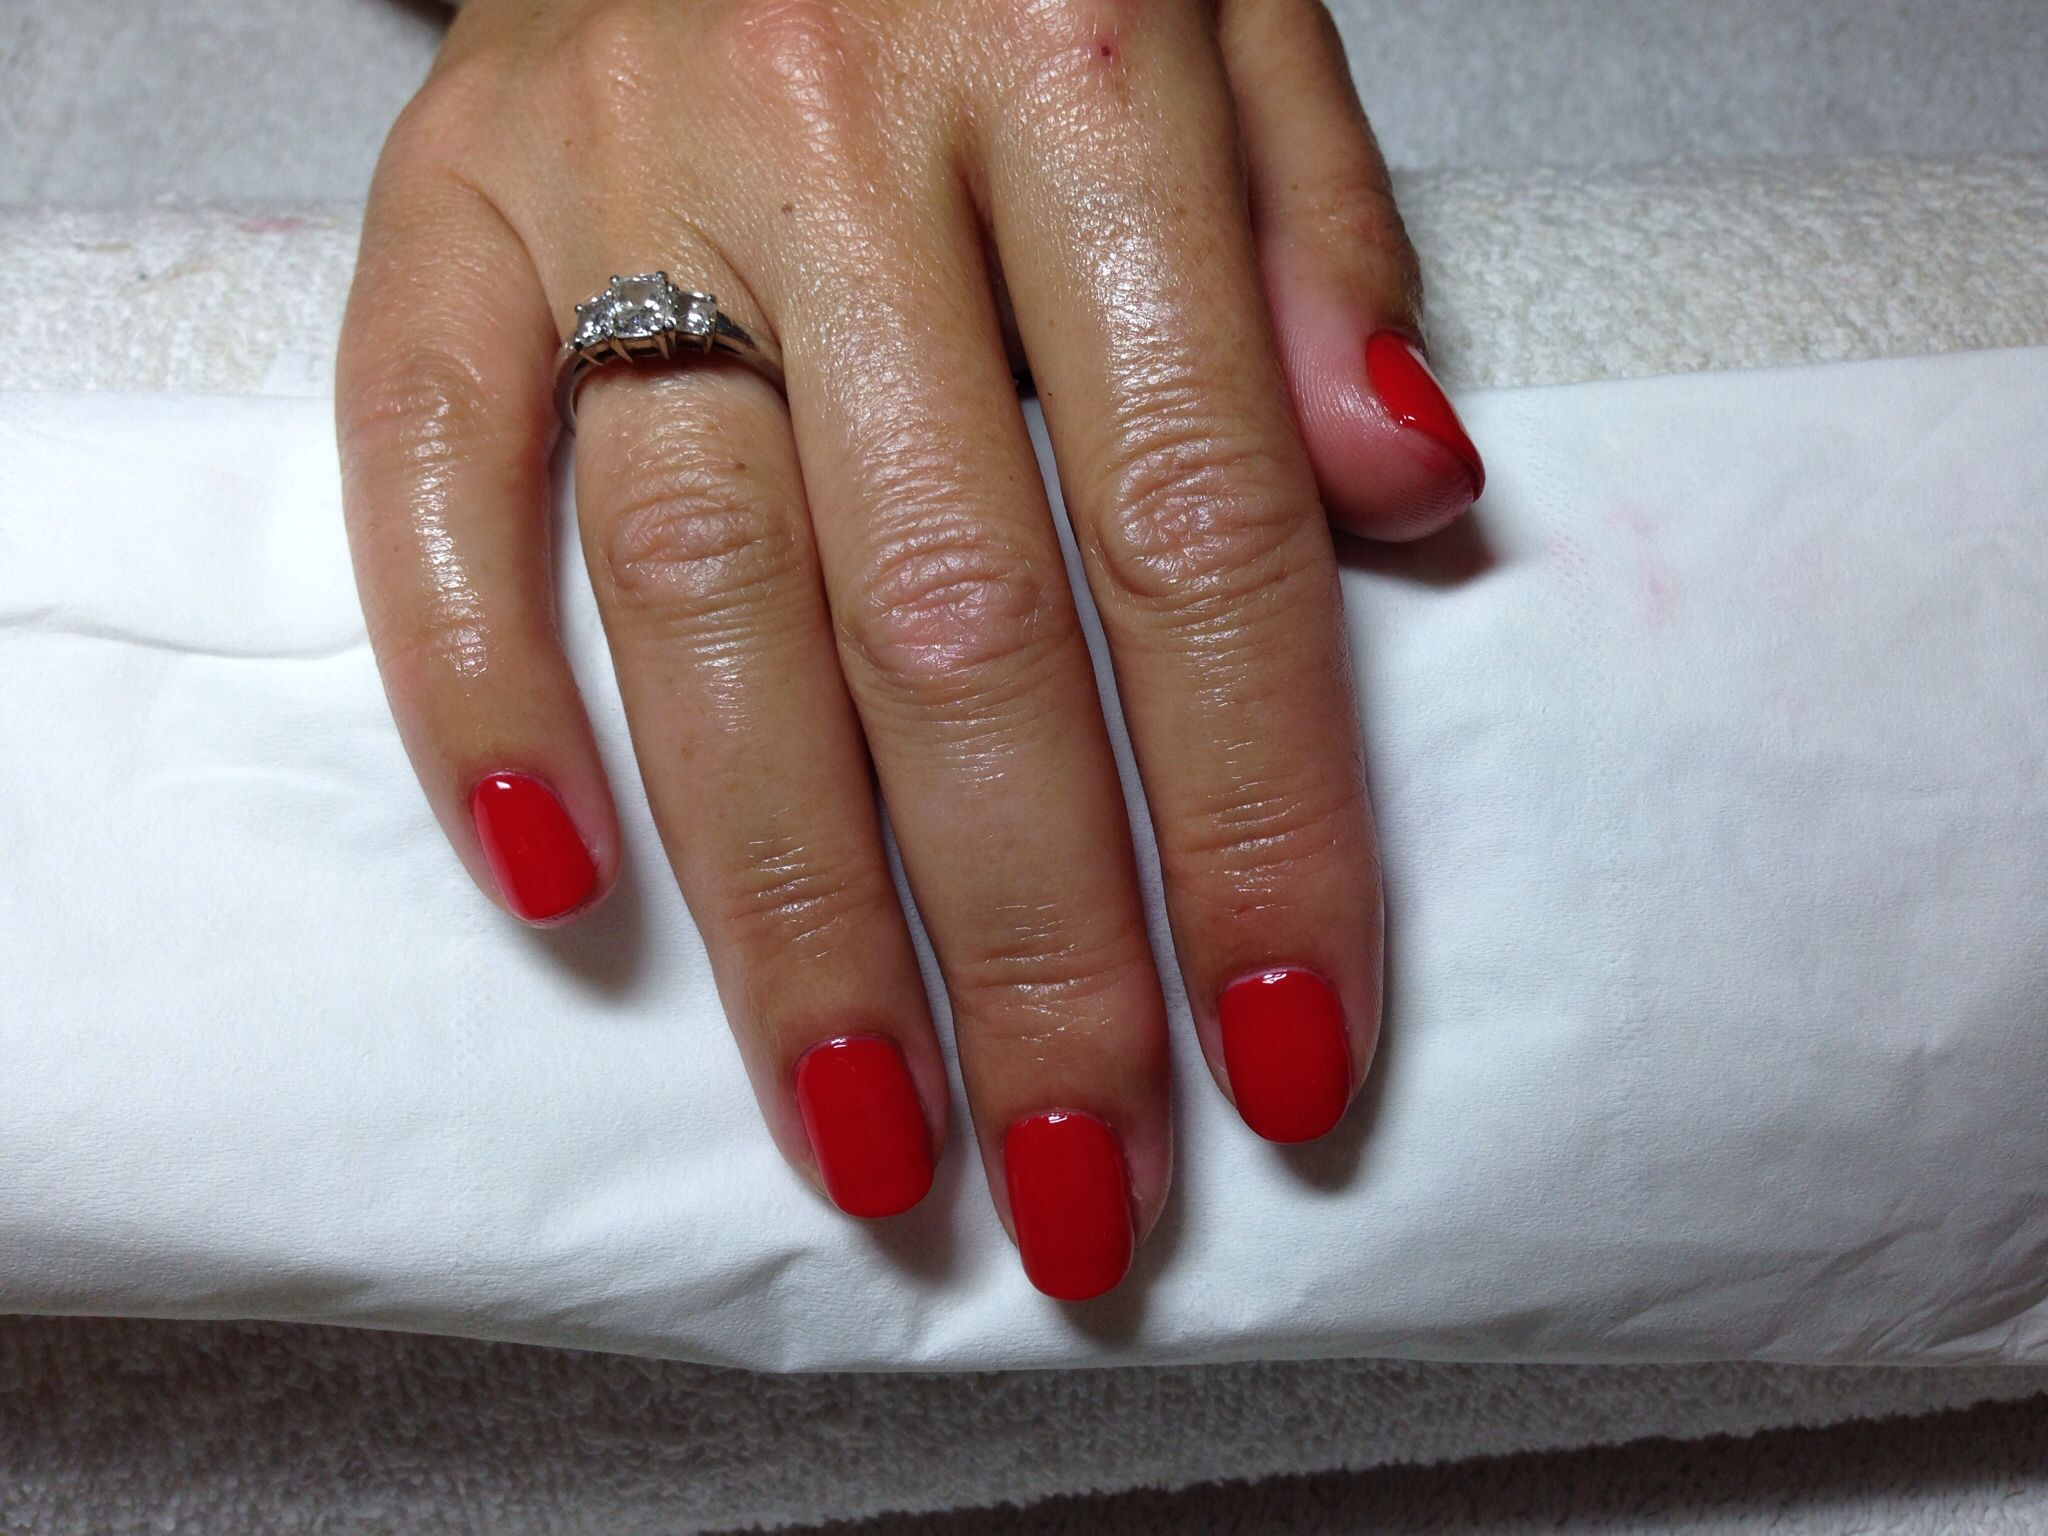 Bio Sculpture Blazing Lacquer from the brand new smoke and